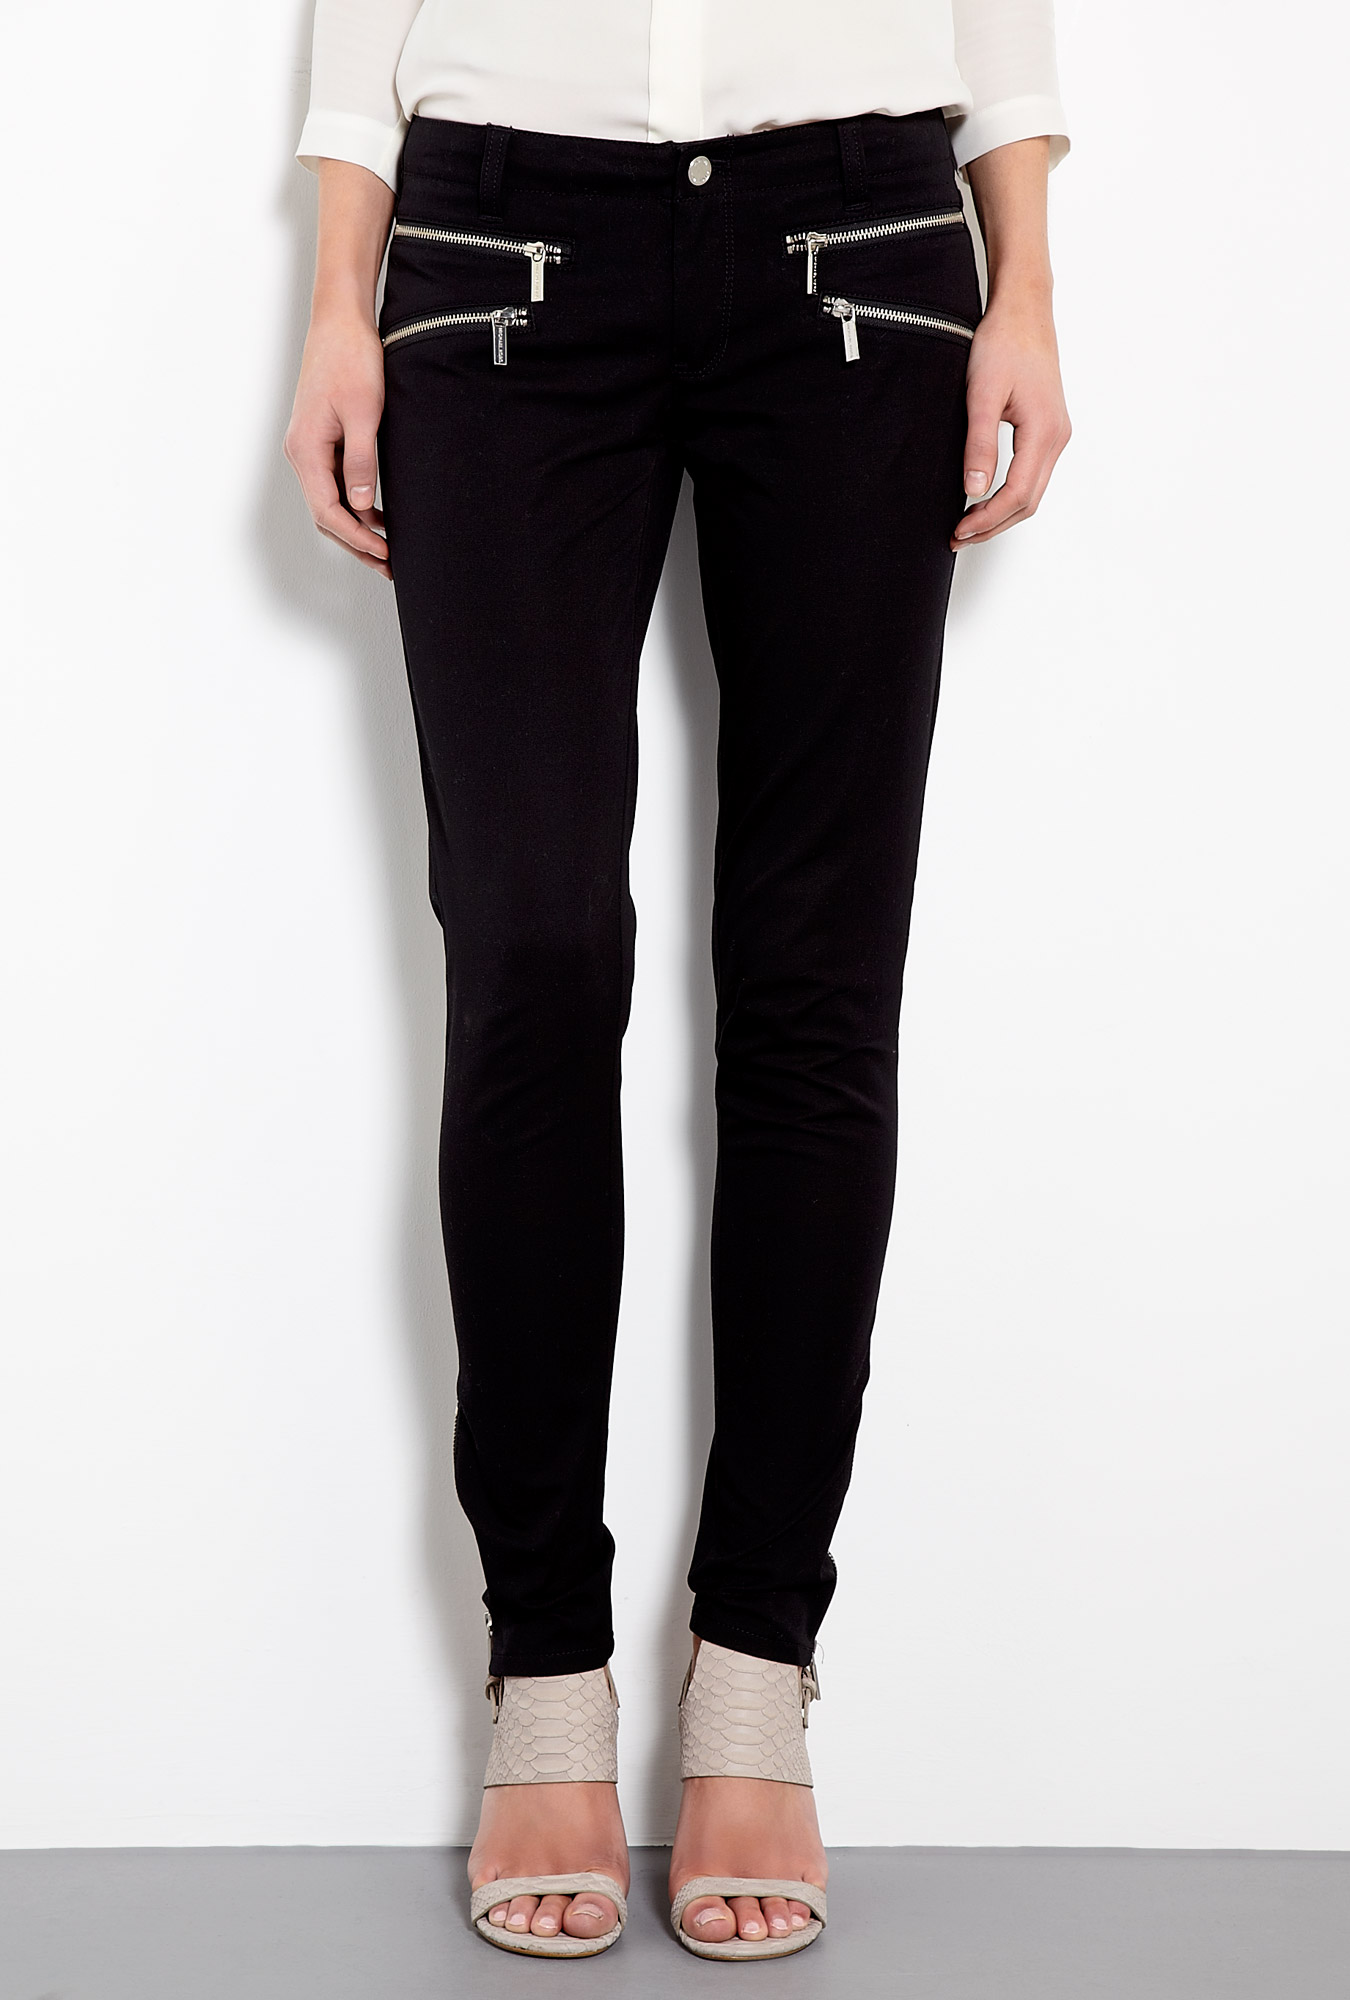 michael michael kors rocker zip skinny jeans by michael michael kors. Black Bedroom Furniture Sets. Home Design Ideas